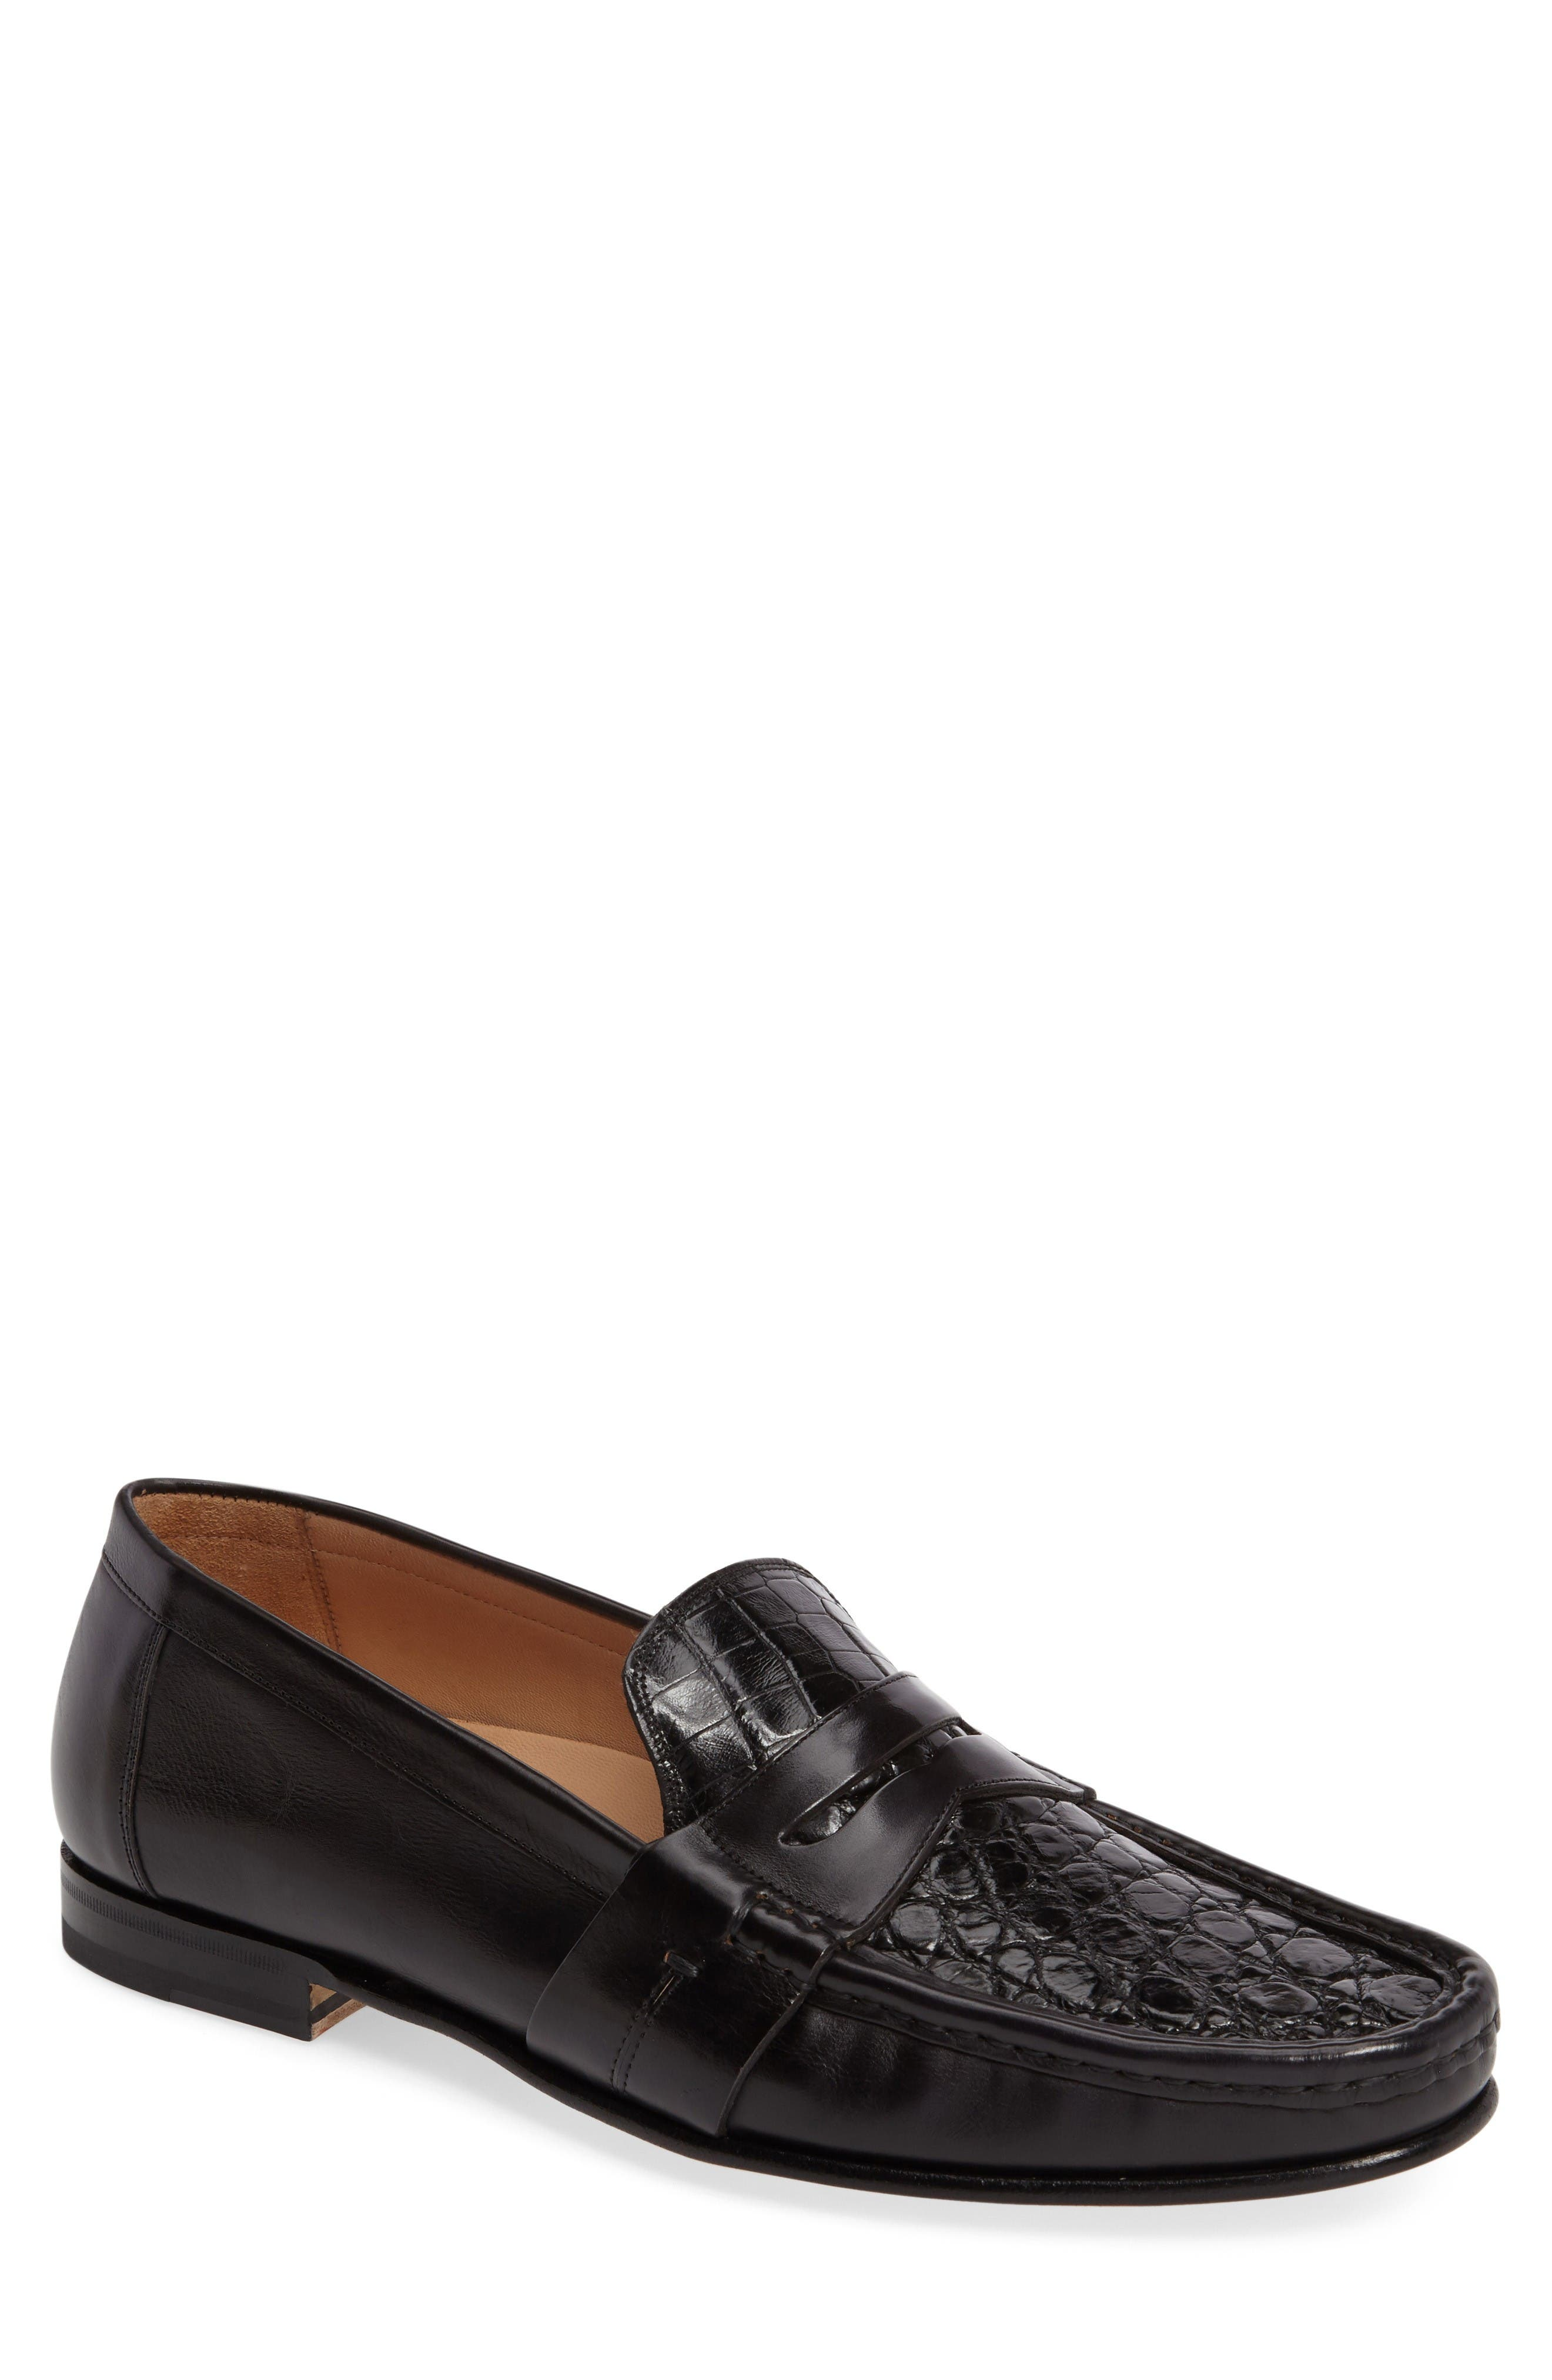 Marconi Penny Loafer,                         Main,                         color, Black Leather